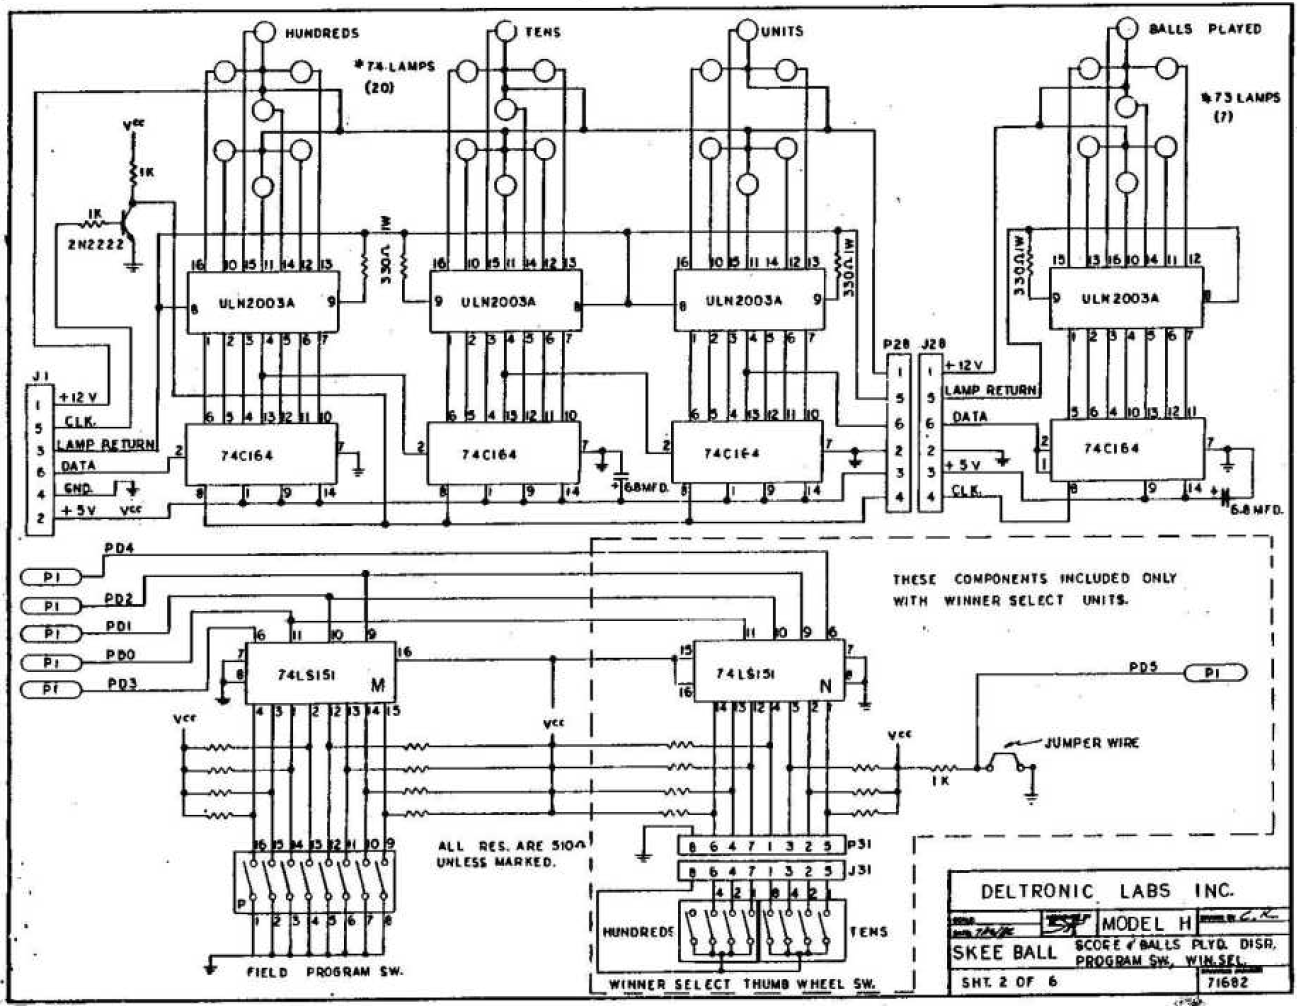 modified schematic explanation of display unit